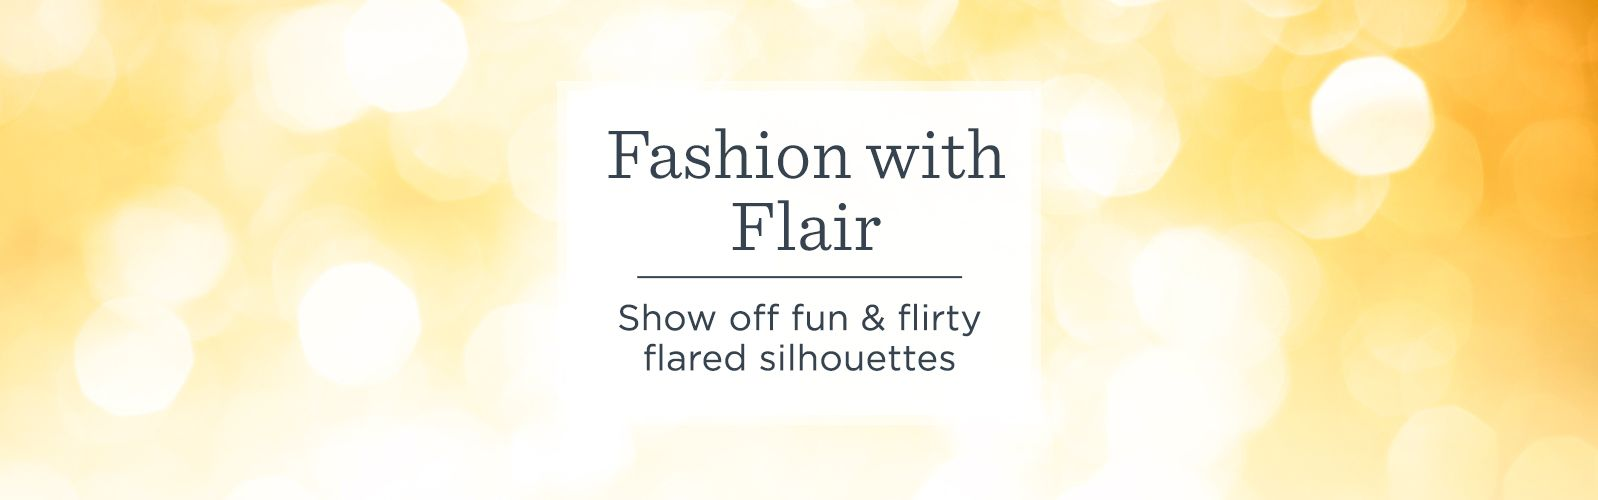 Fashion with Flair. Show off fun & flirty flared silhouettes